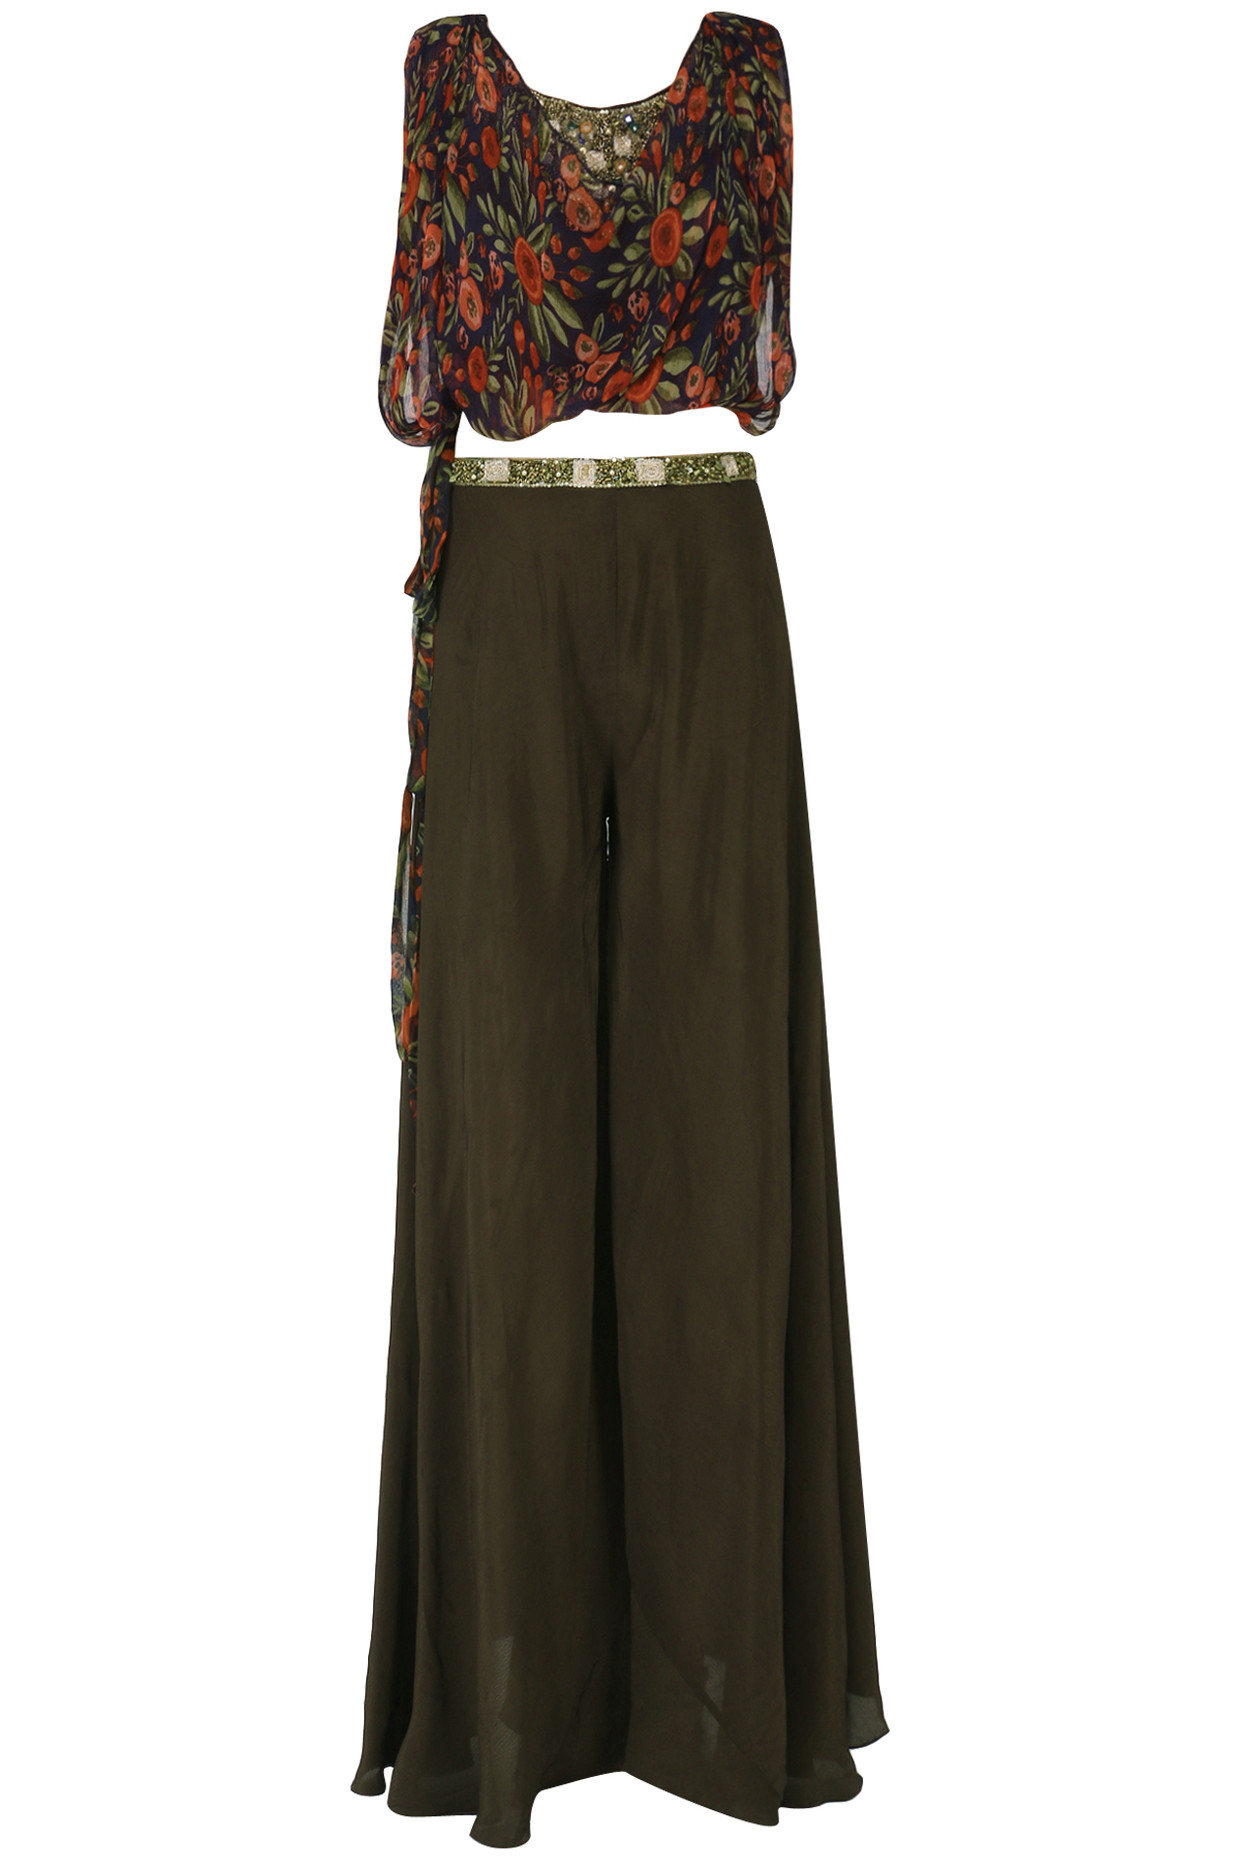 Brown Embroidered Top with Palazzo and Tie Over Layer Set by Pallavi Jaipur